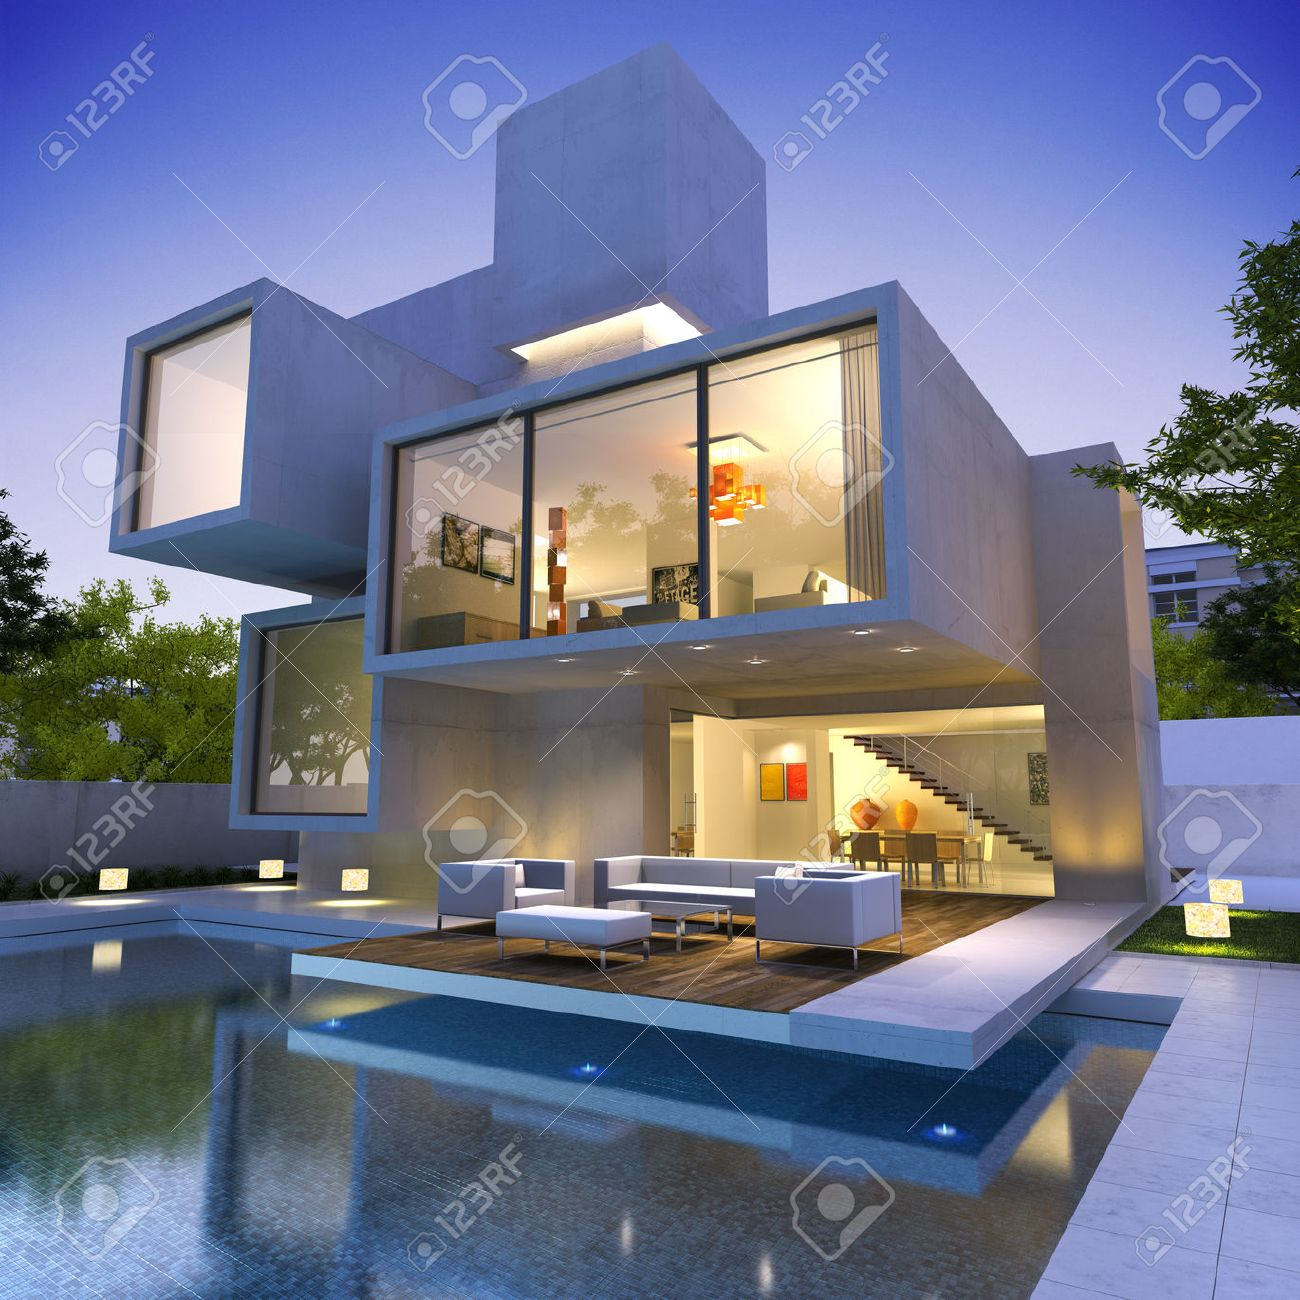 external view of a contemporary house with pool at dusk stock external view of a contemporary house with pool at dusk stock photo 27281396